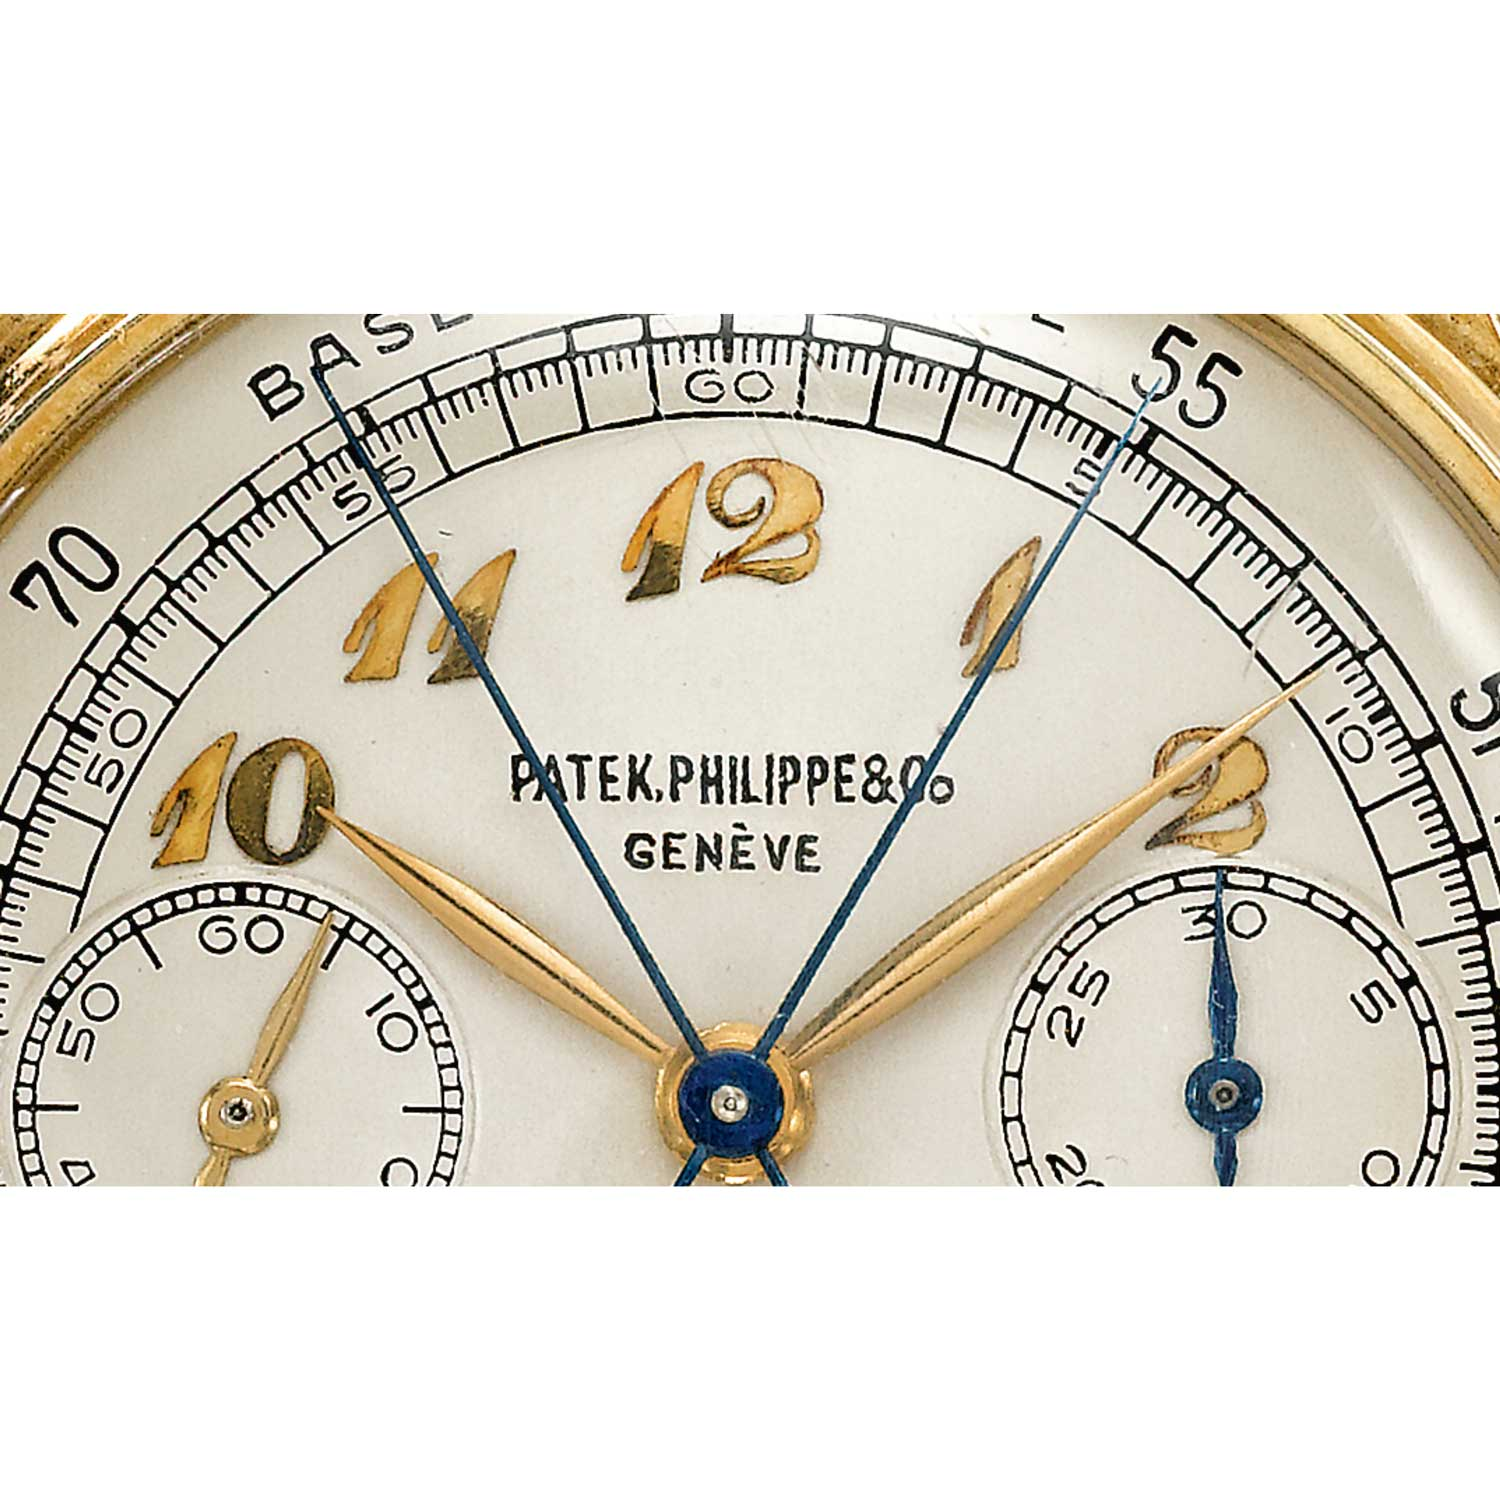 Dial close up of the Case side of the 1946 Patek Philippe ref. 1436 yellow gold split second chronograph with Breguet numerals (Sothebys.com)